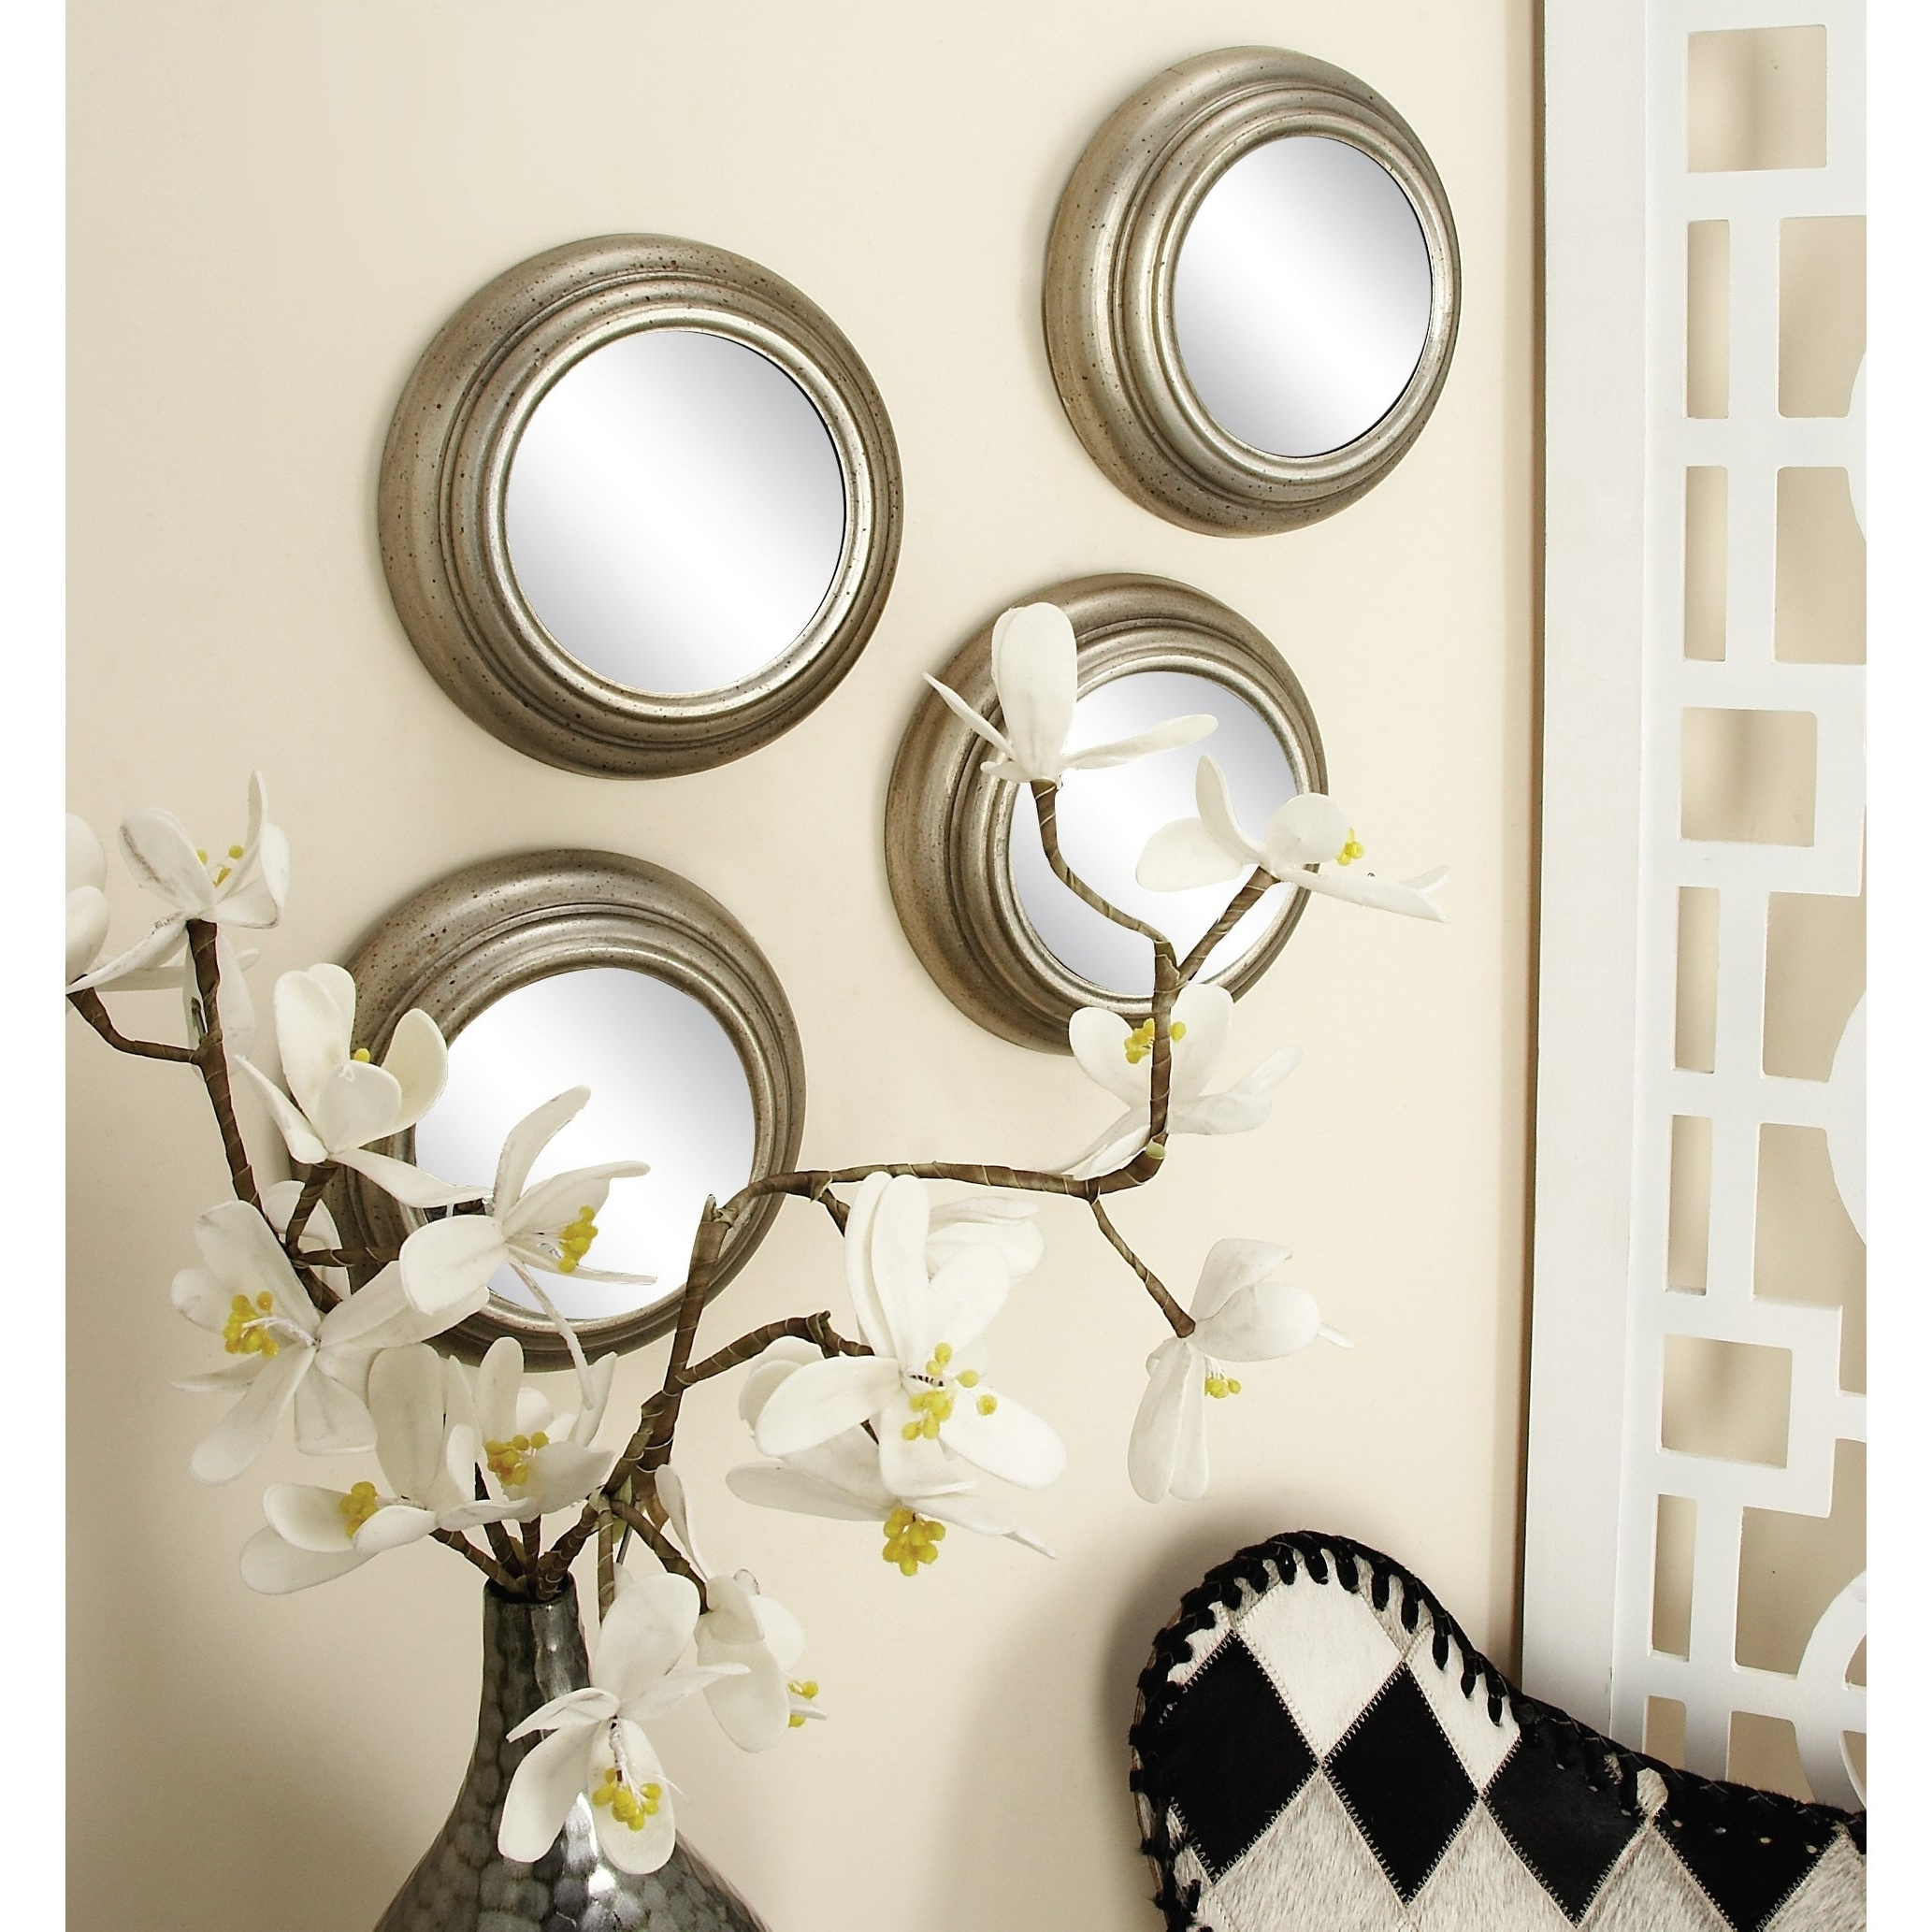 Favorite Set Of 12 Contemporary Round Decorative Wall Mirrorsstudio 350 – Silver For Decorative Cheap Wall Mirrors (View 12 of 20)